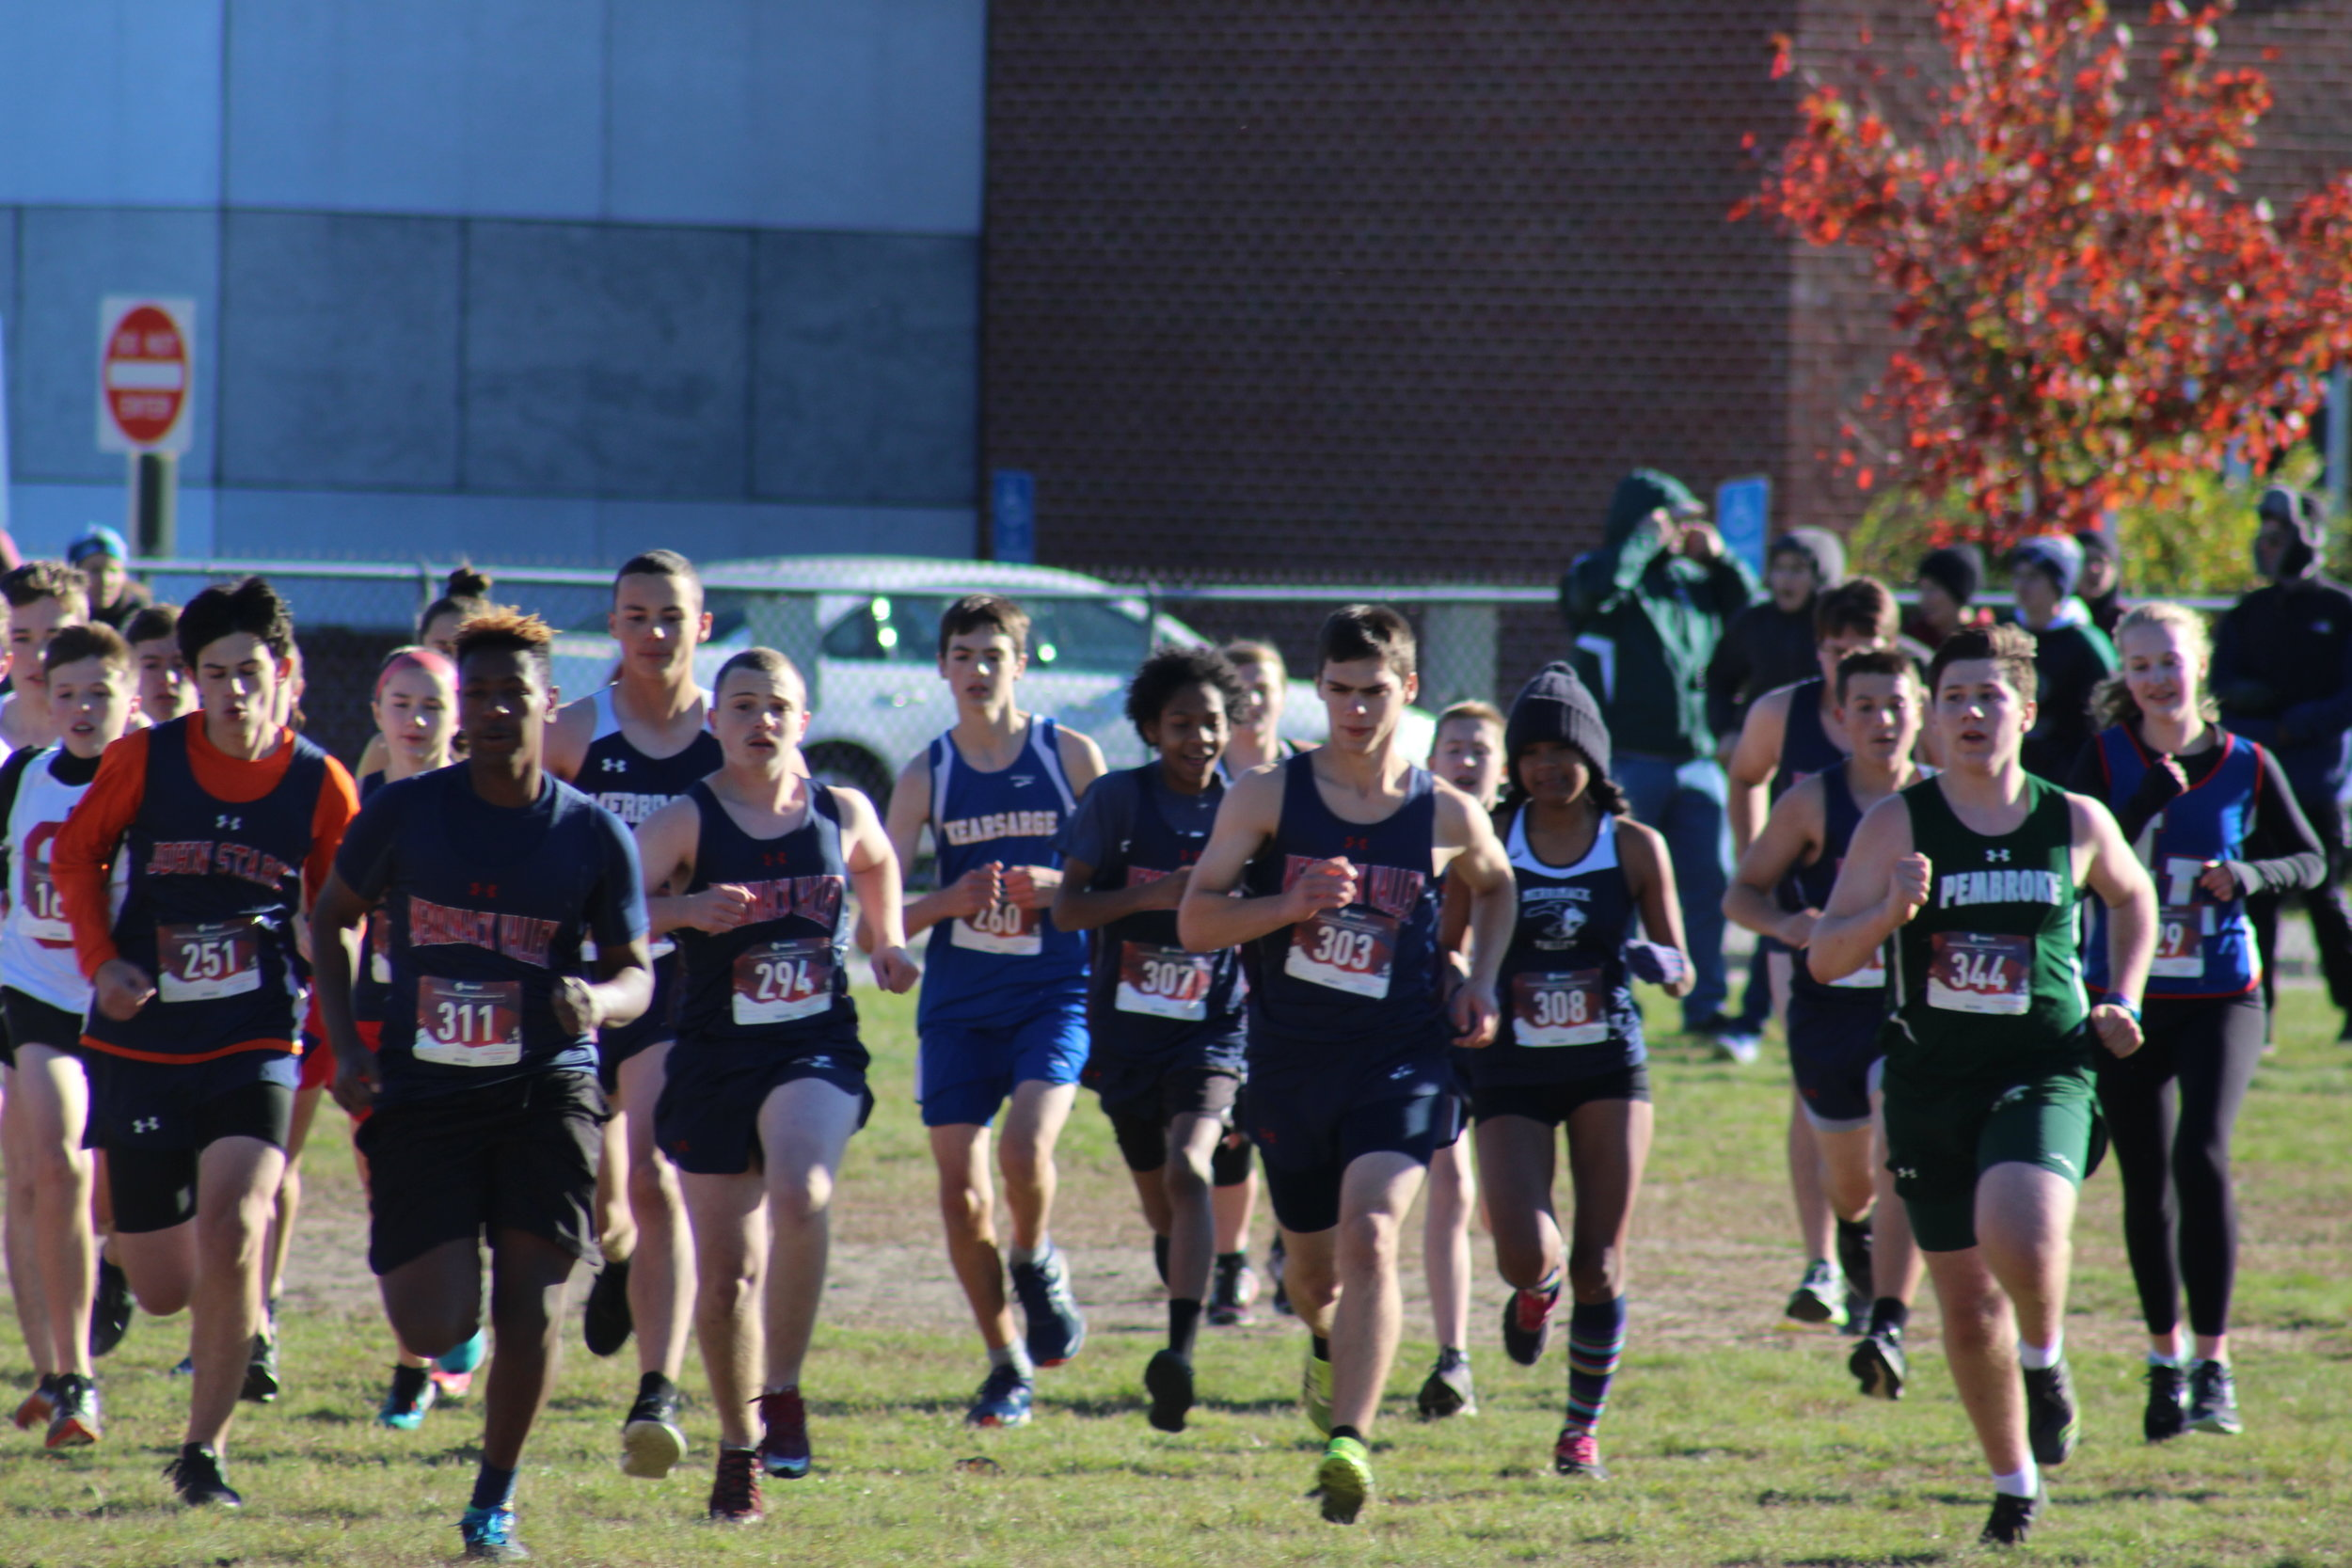 Start of Combined JV Race